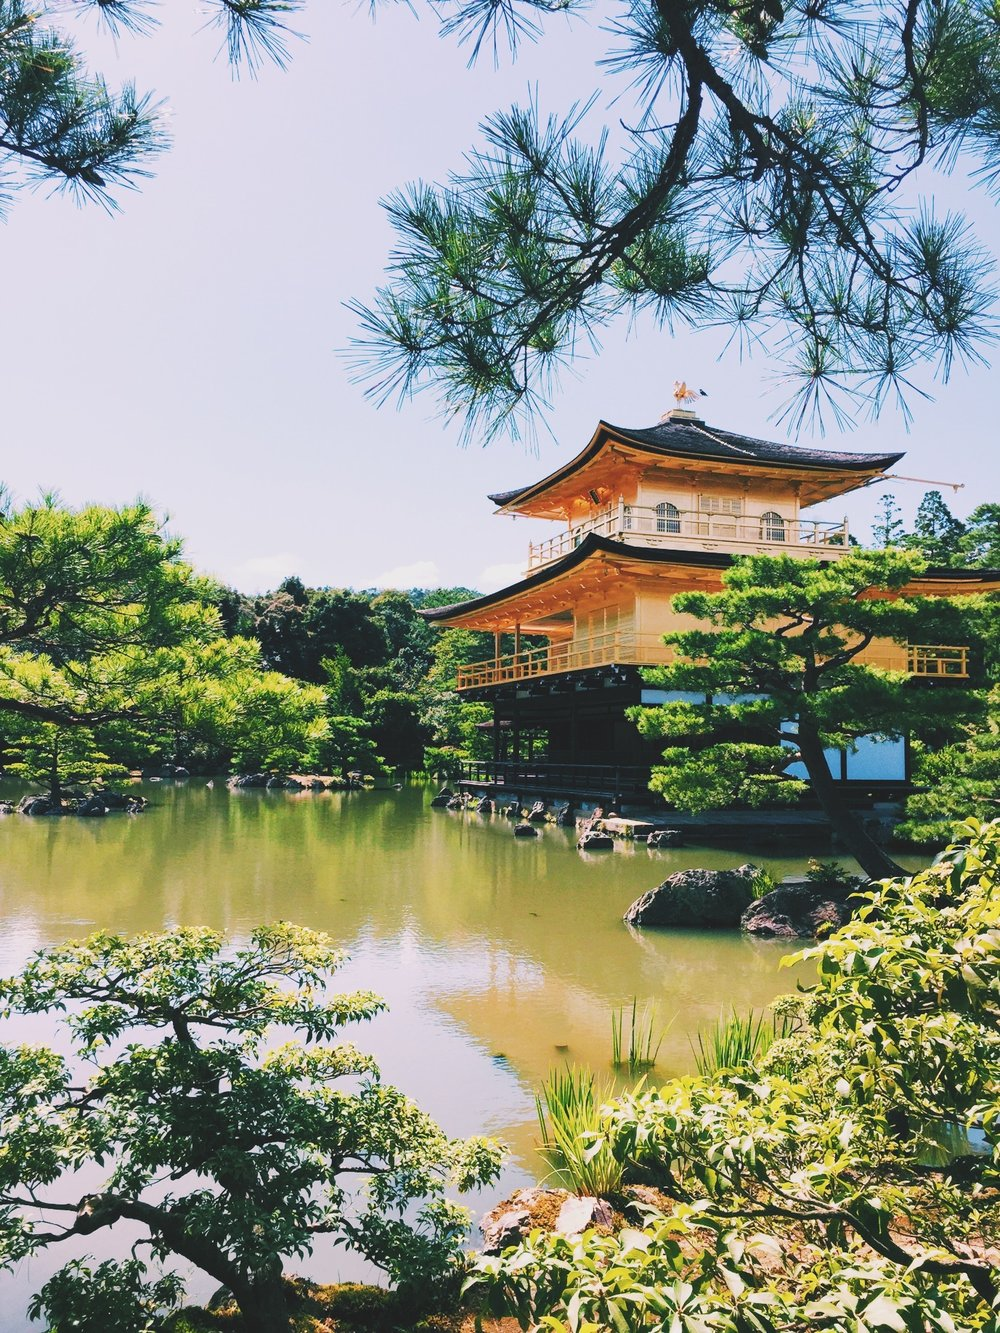 Travel Guide to Kyoto, Japan